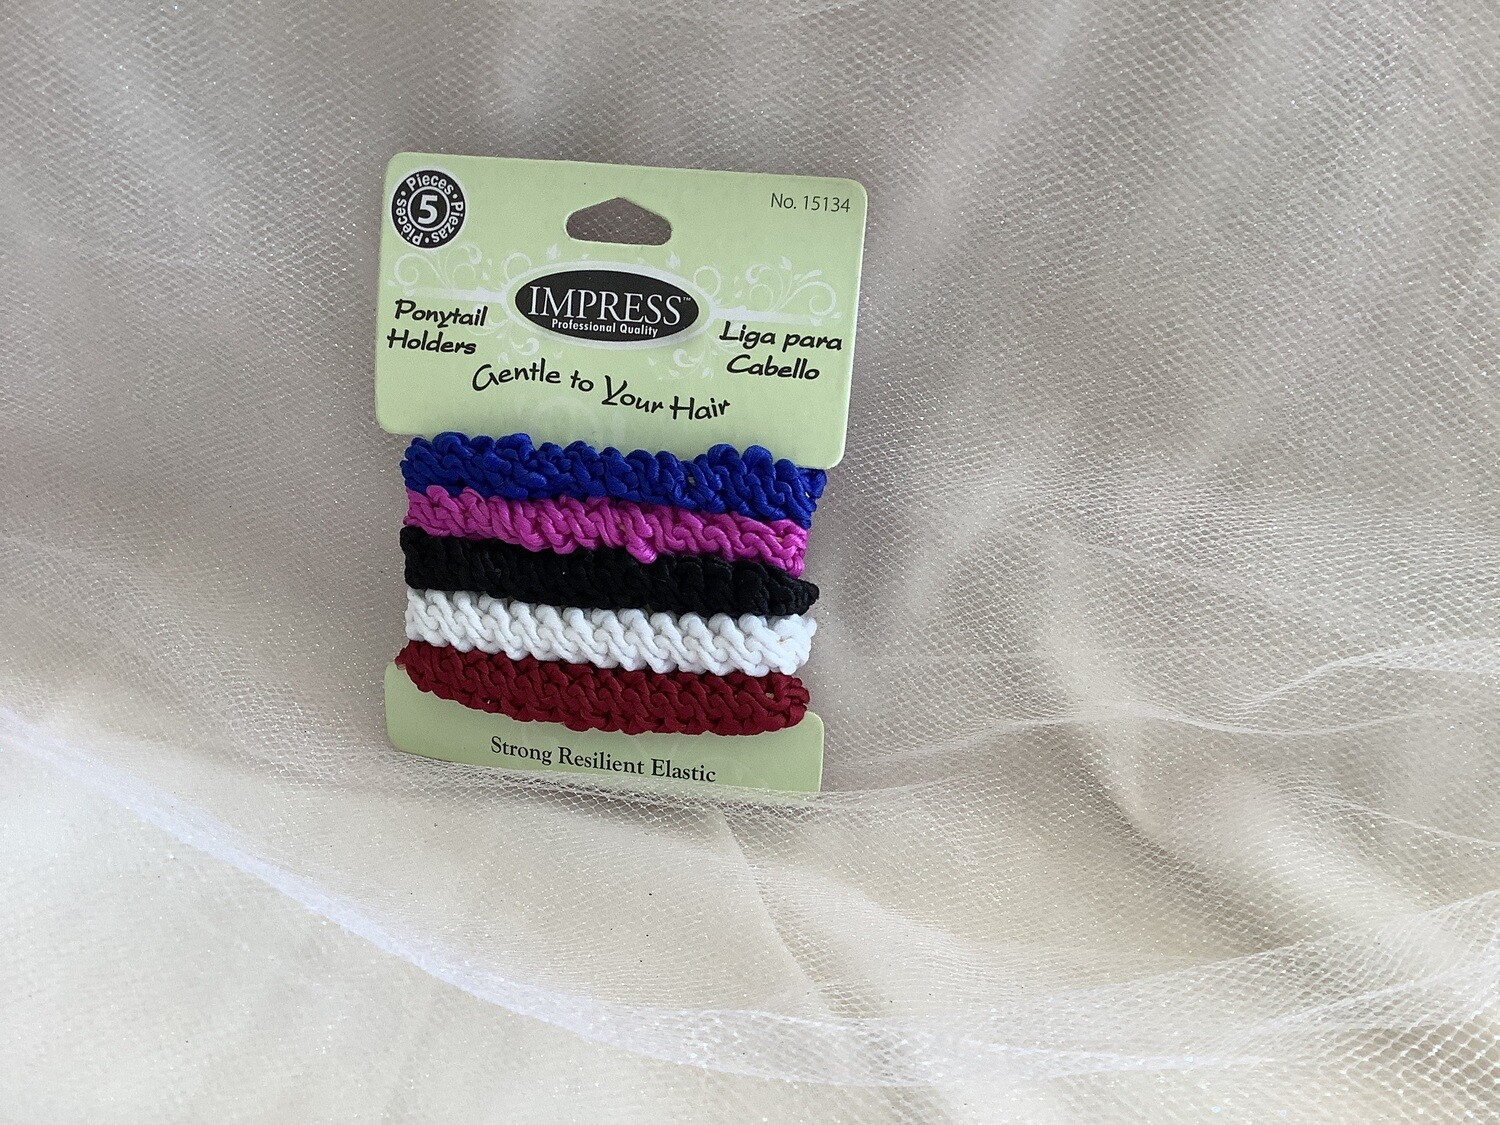 PONYTAIL HOLDERS 5 CT EXTRA THICK